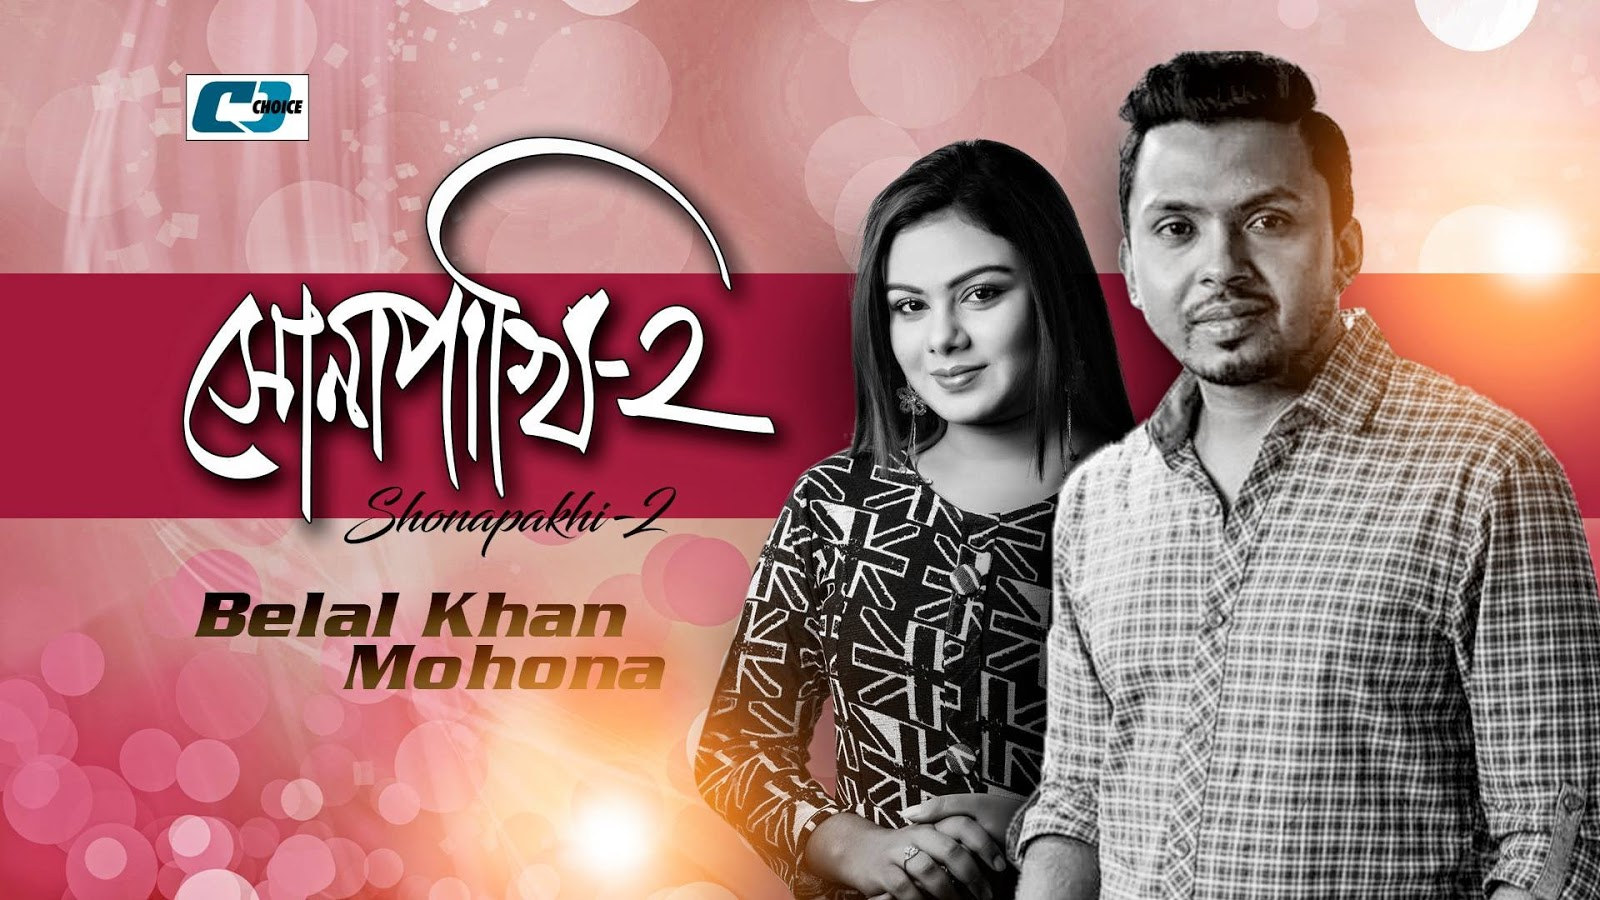 bangla new movie song 2016 download